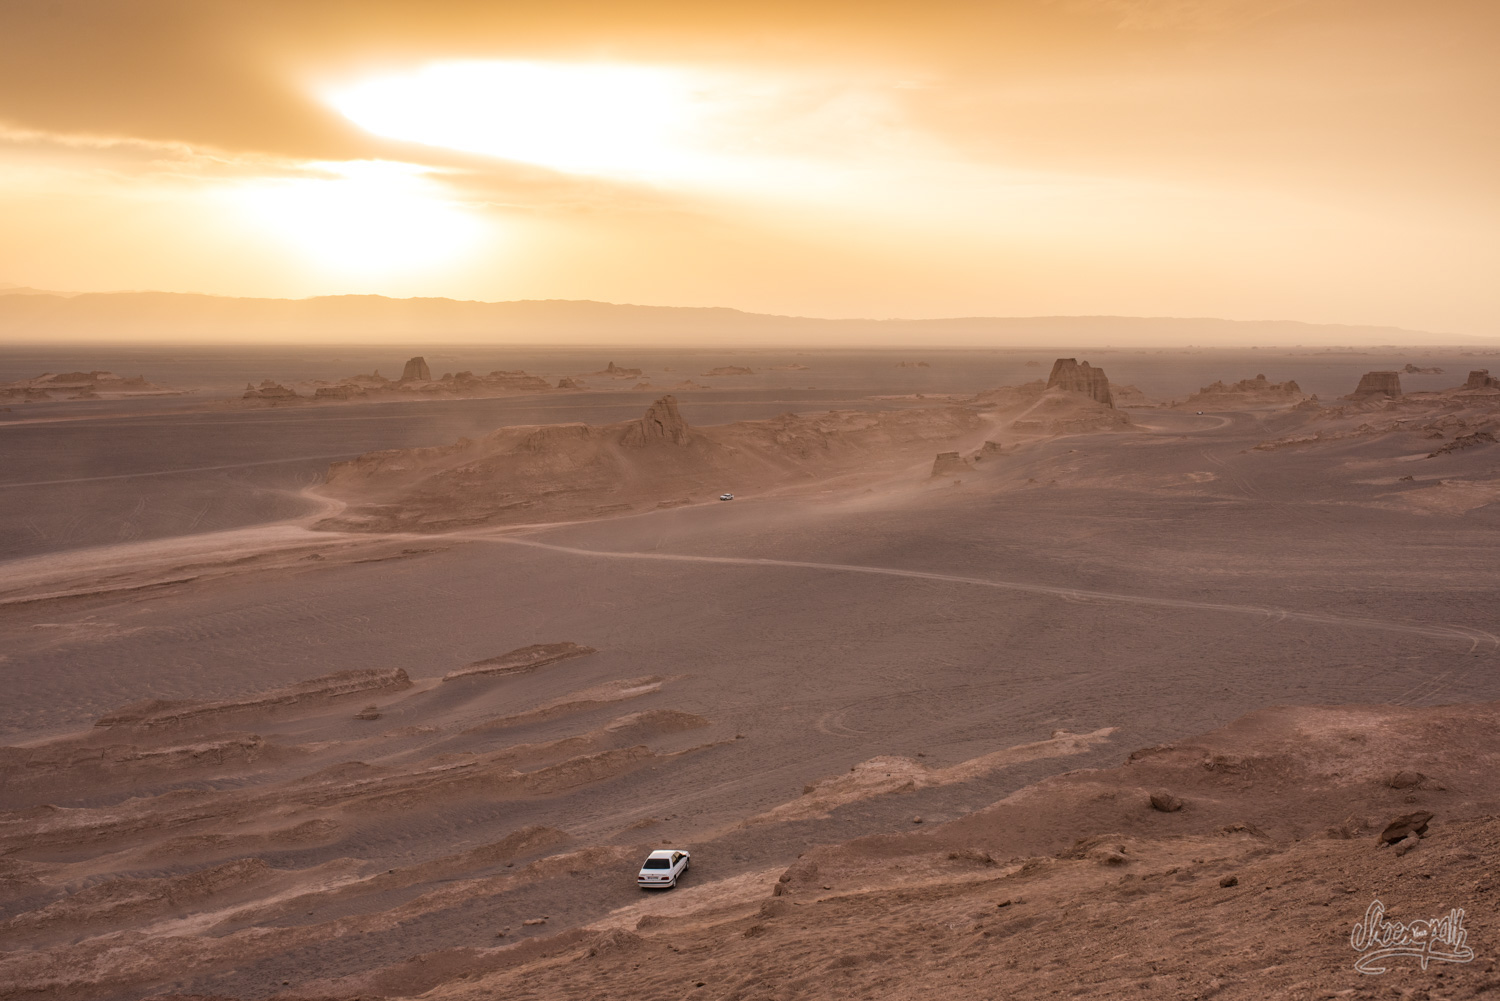 Sunset over the kalut in Lut desert, near Kerman